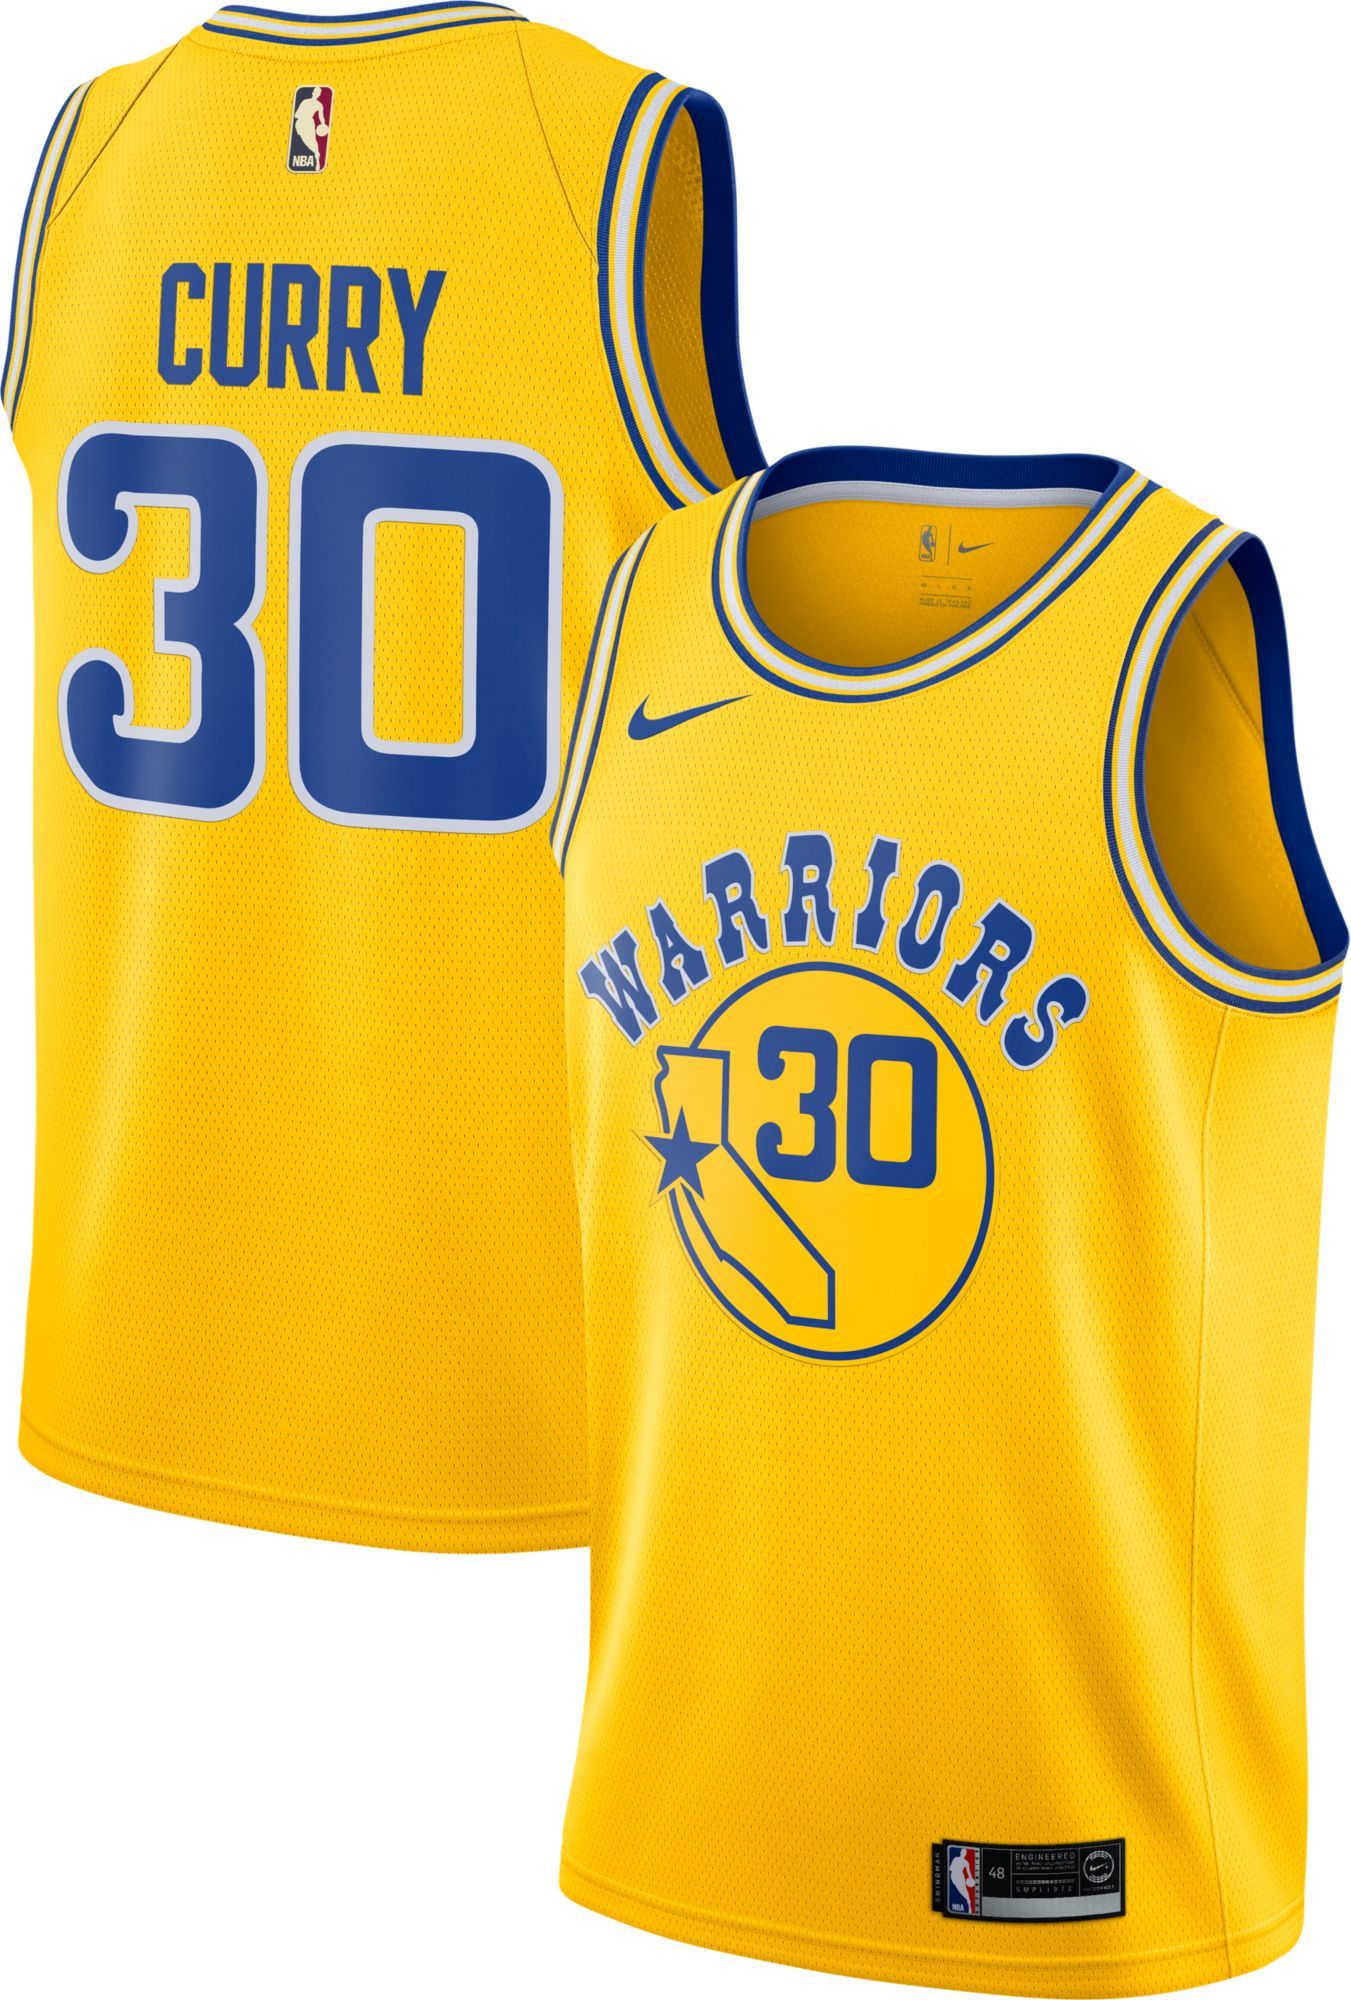 e908af3167b Nike Men's Golden State Warriors Stephen Curry Dri-FIT Hardwood Classic  Swingman Jersey, Yellow